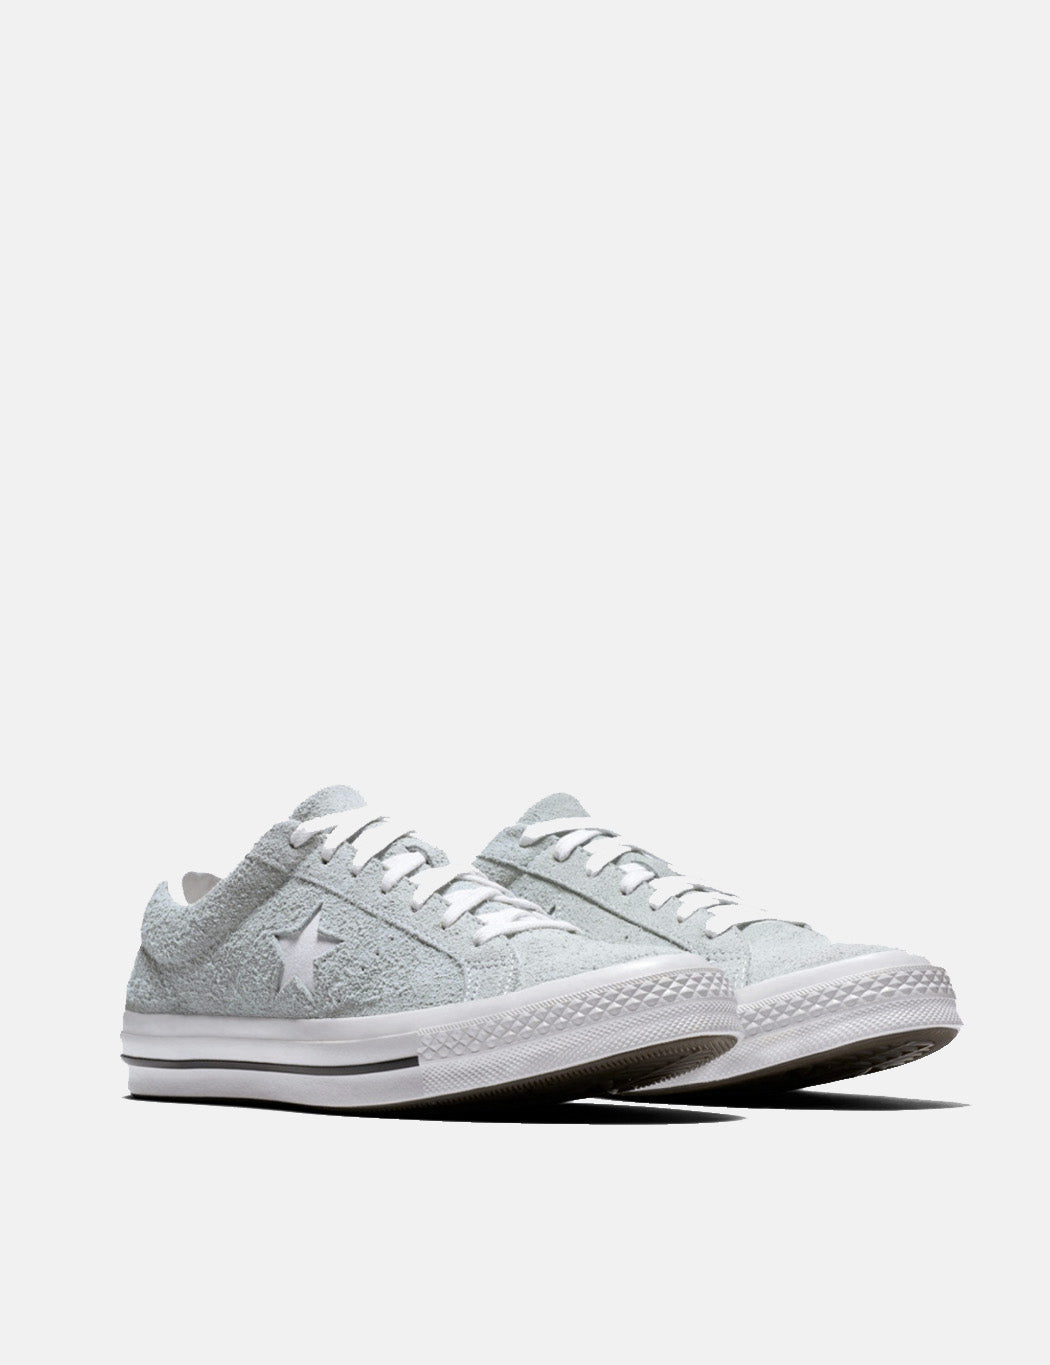 3311c017d46915 ... Converse One Star Ox Low Suede (159493C) - Dried Bamboo White Black ...